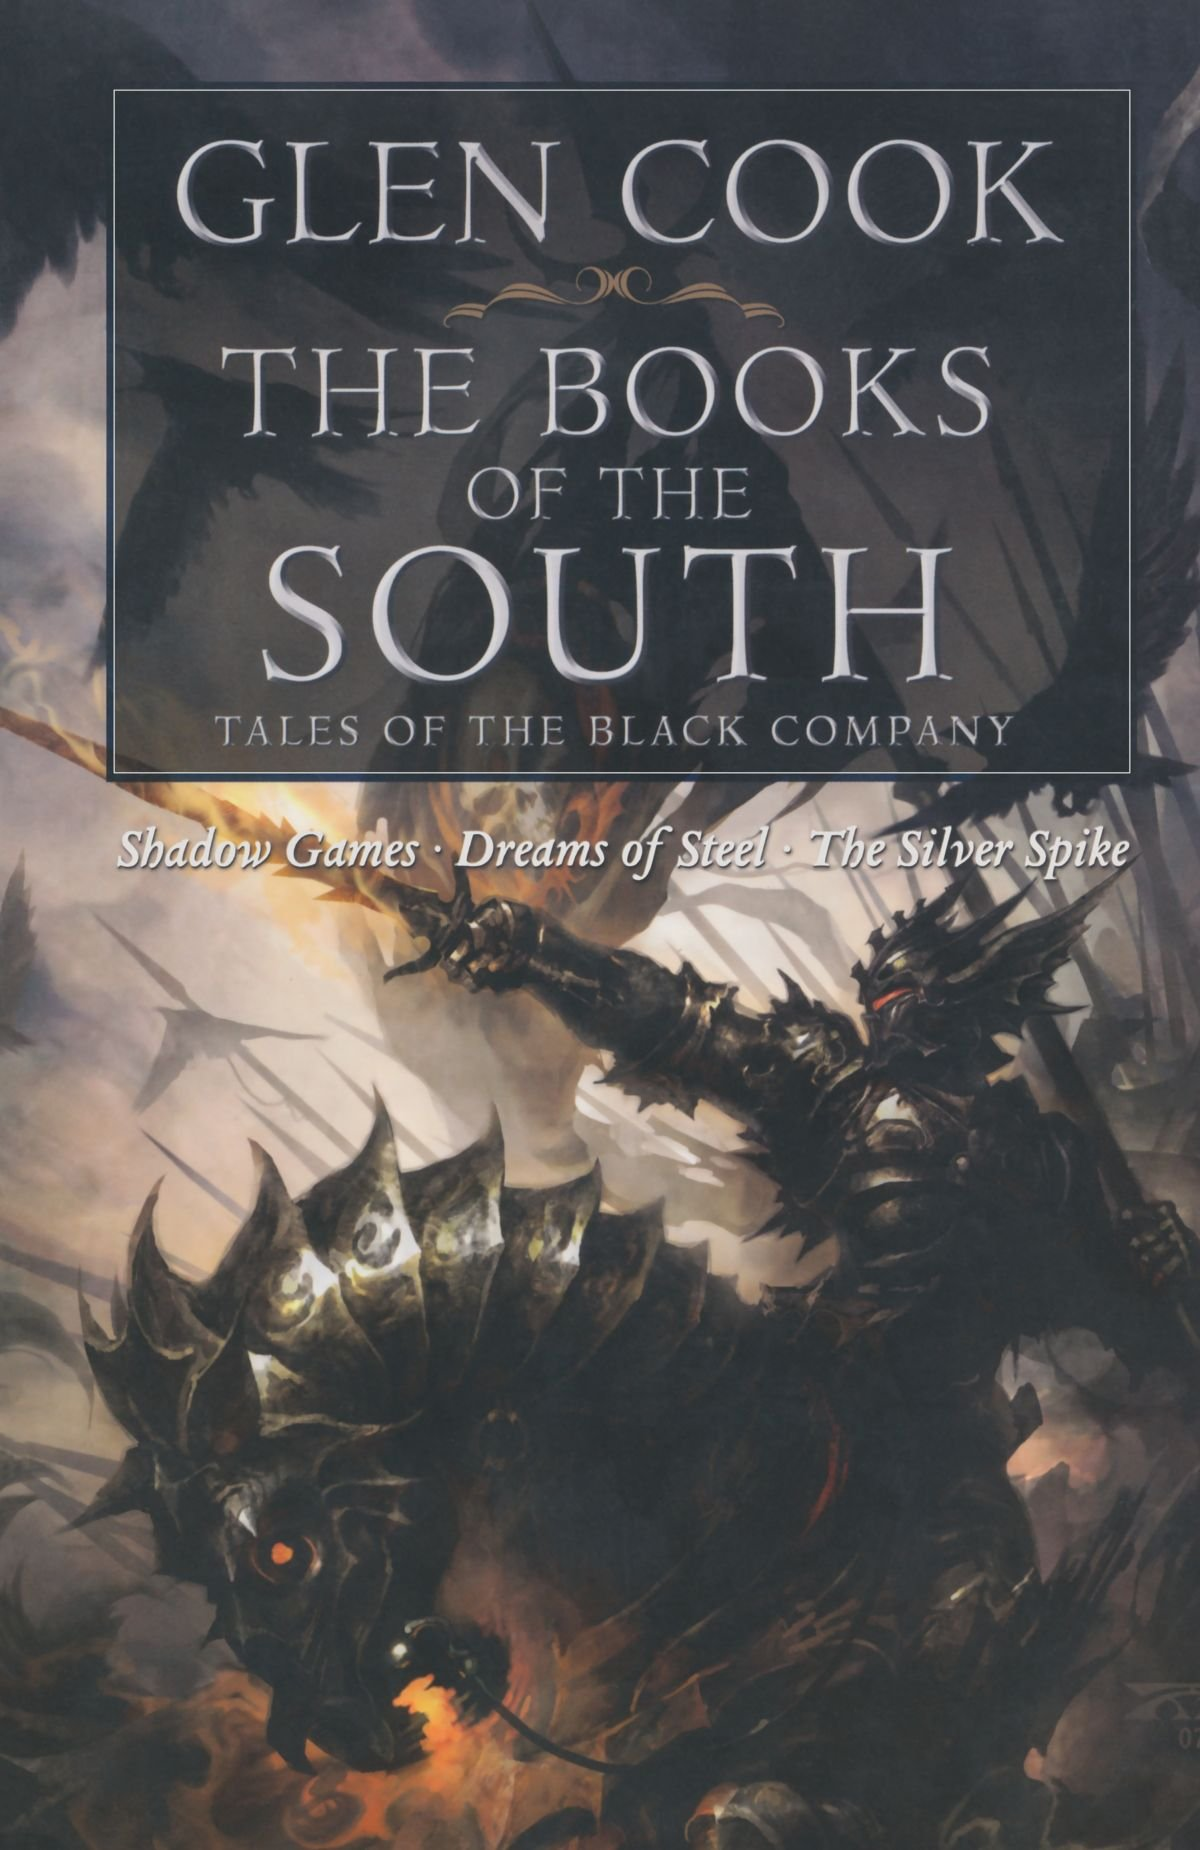 The Books of the South: Tales of the Black Company: Tales of the Black Company (Chronicles of the Black Company)